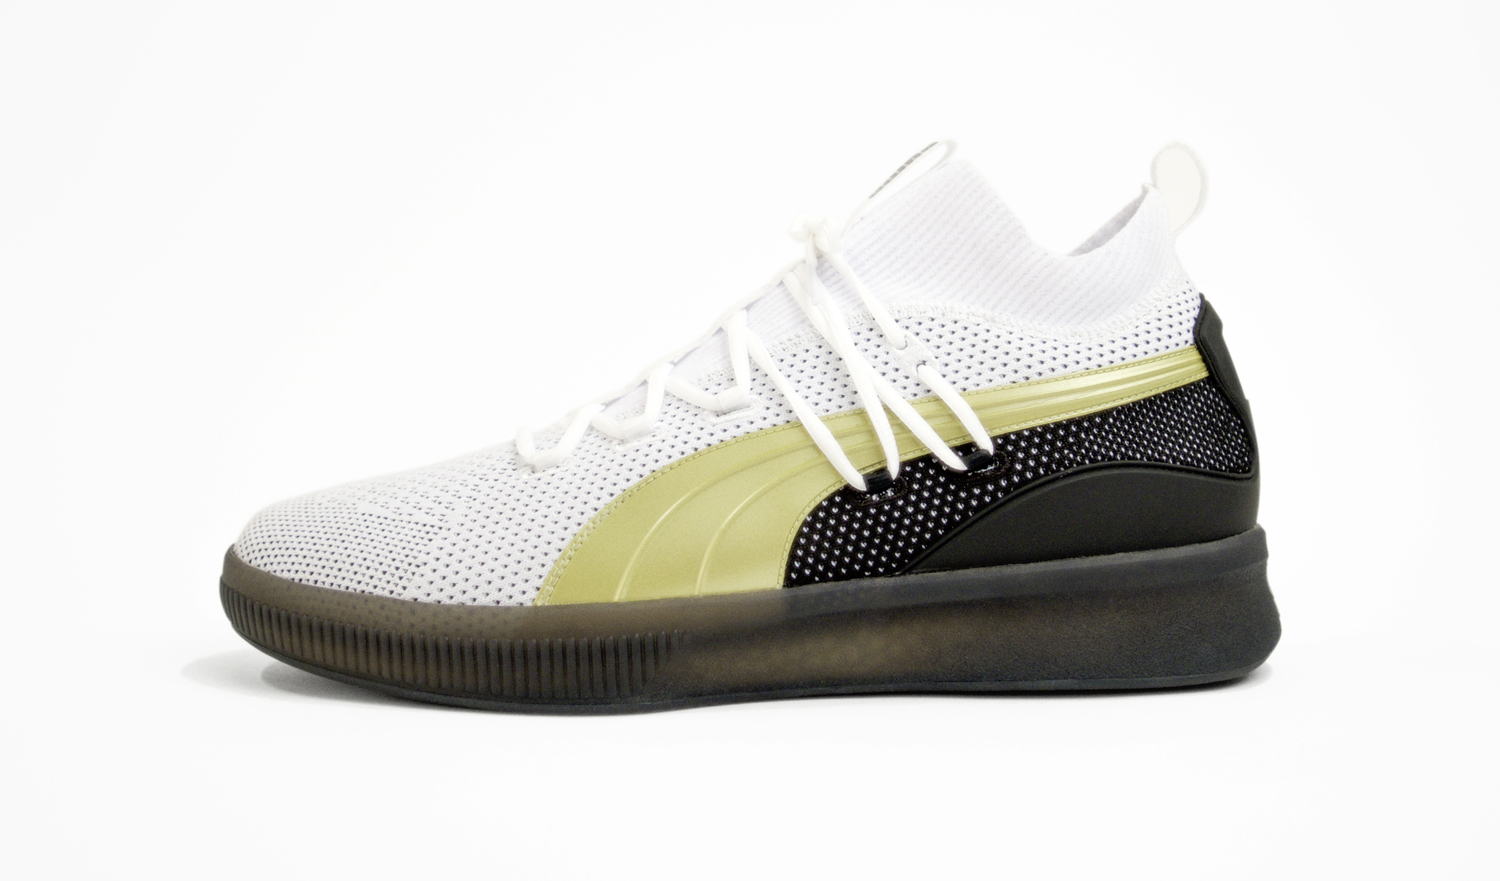 Puma-Clyde-Court-Danny-Green-PE-White-Gold-1 - WearTesters 31956ad14